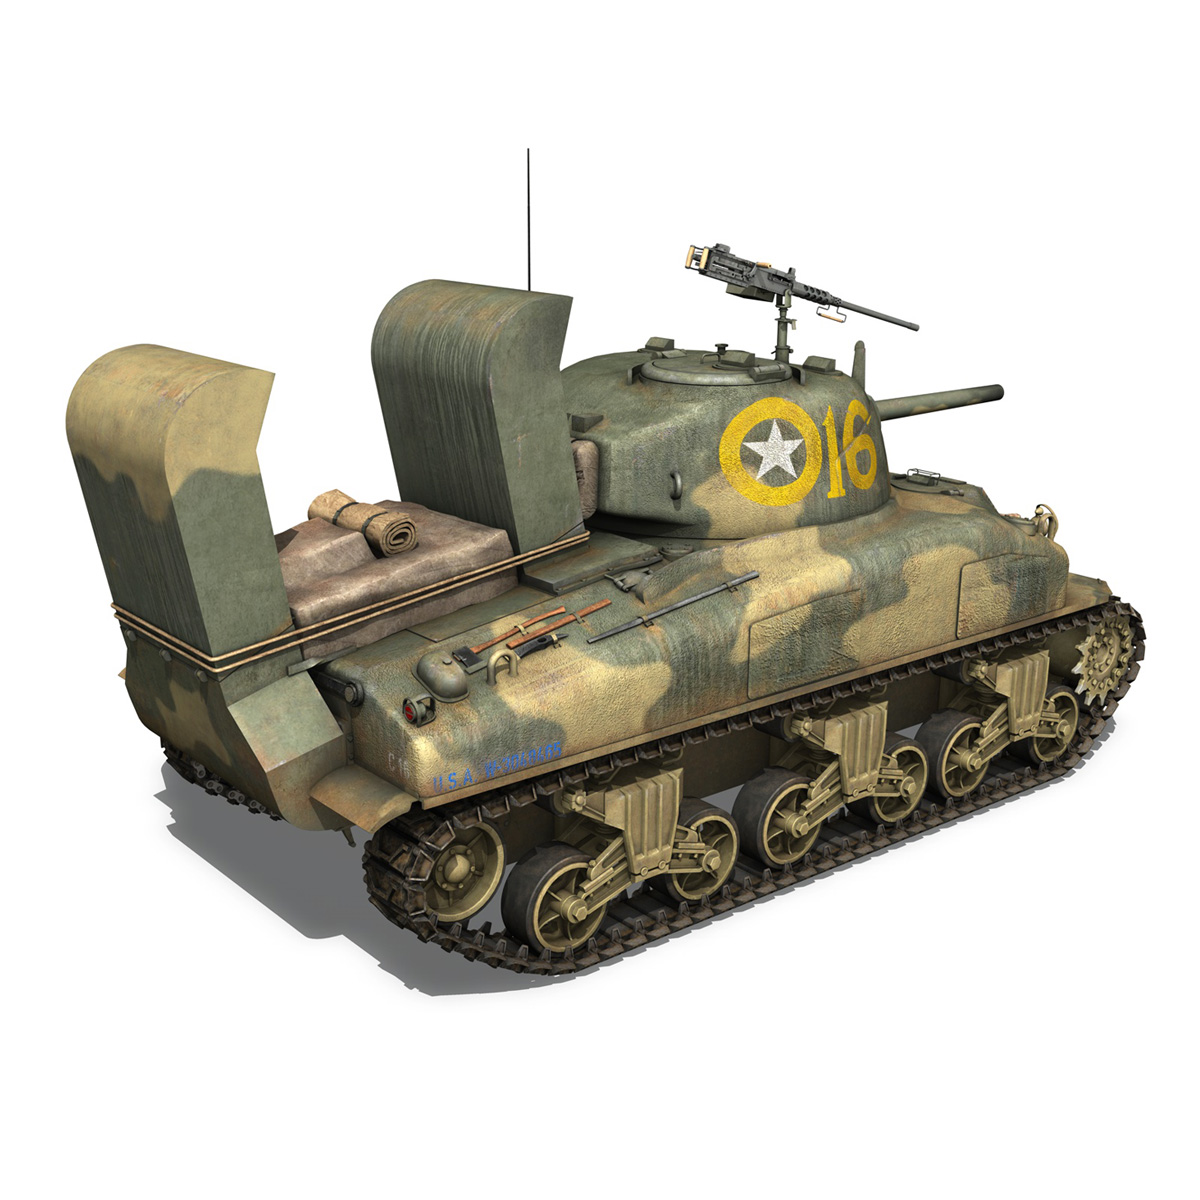 m4a1 sherman – 16 3d model 3ds fbx c4d lwo obj 273055